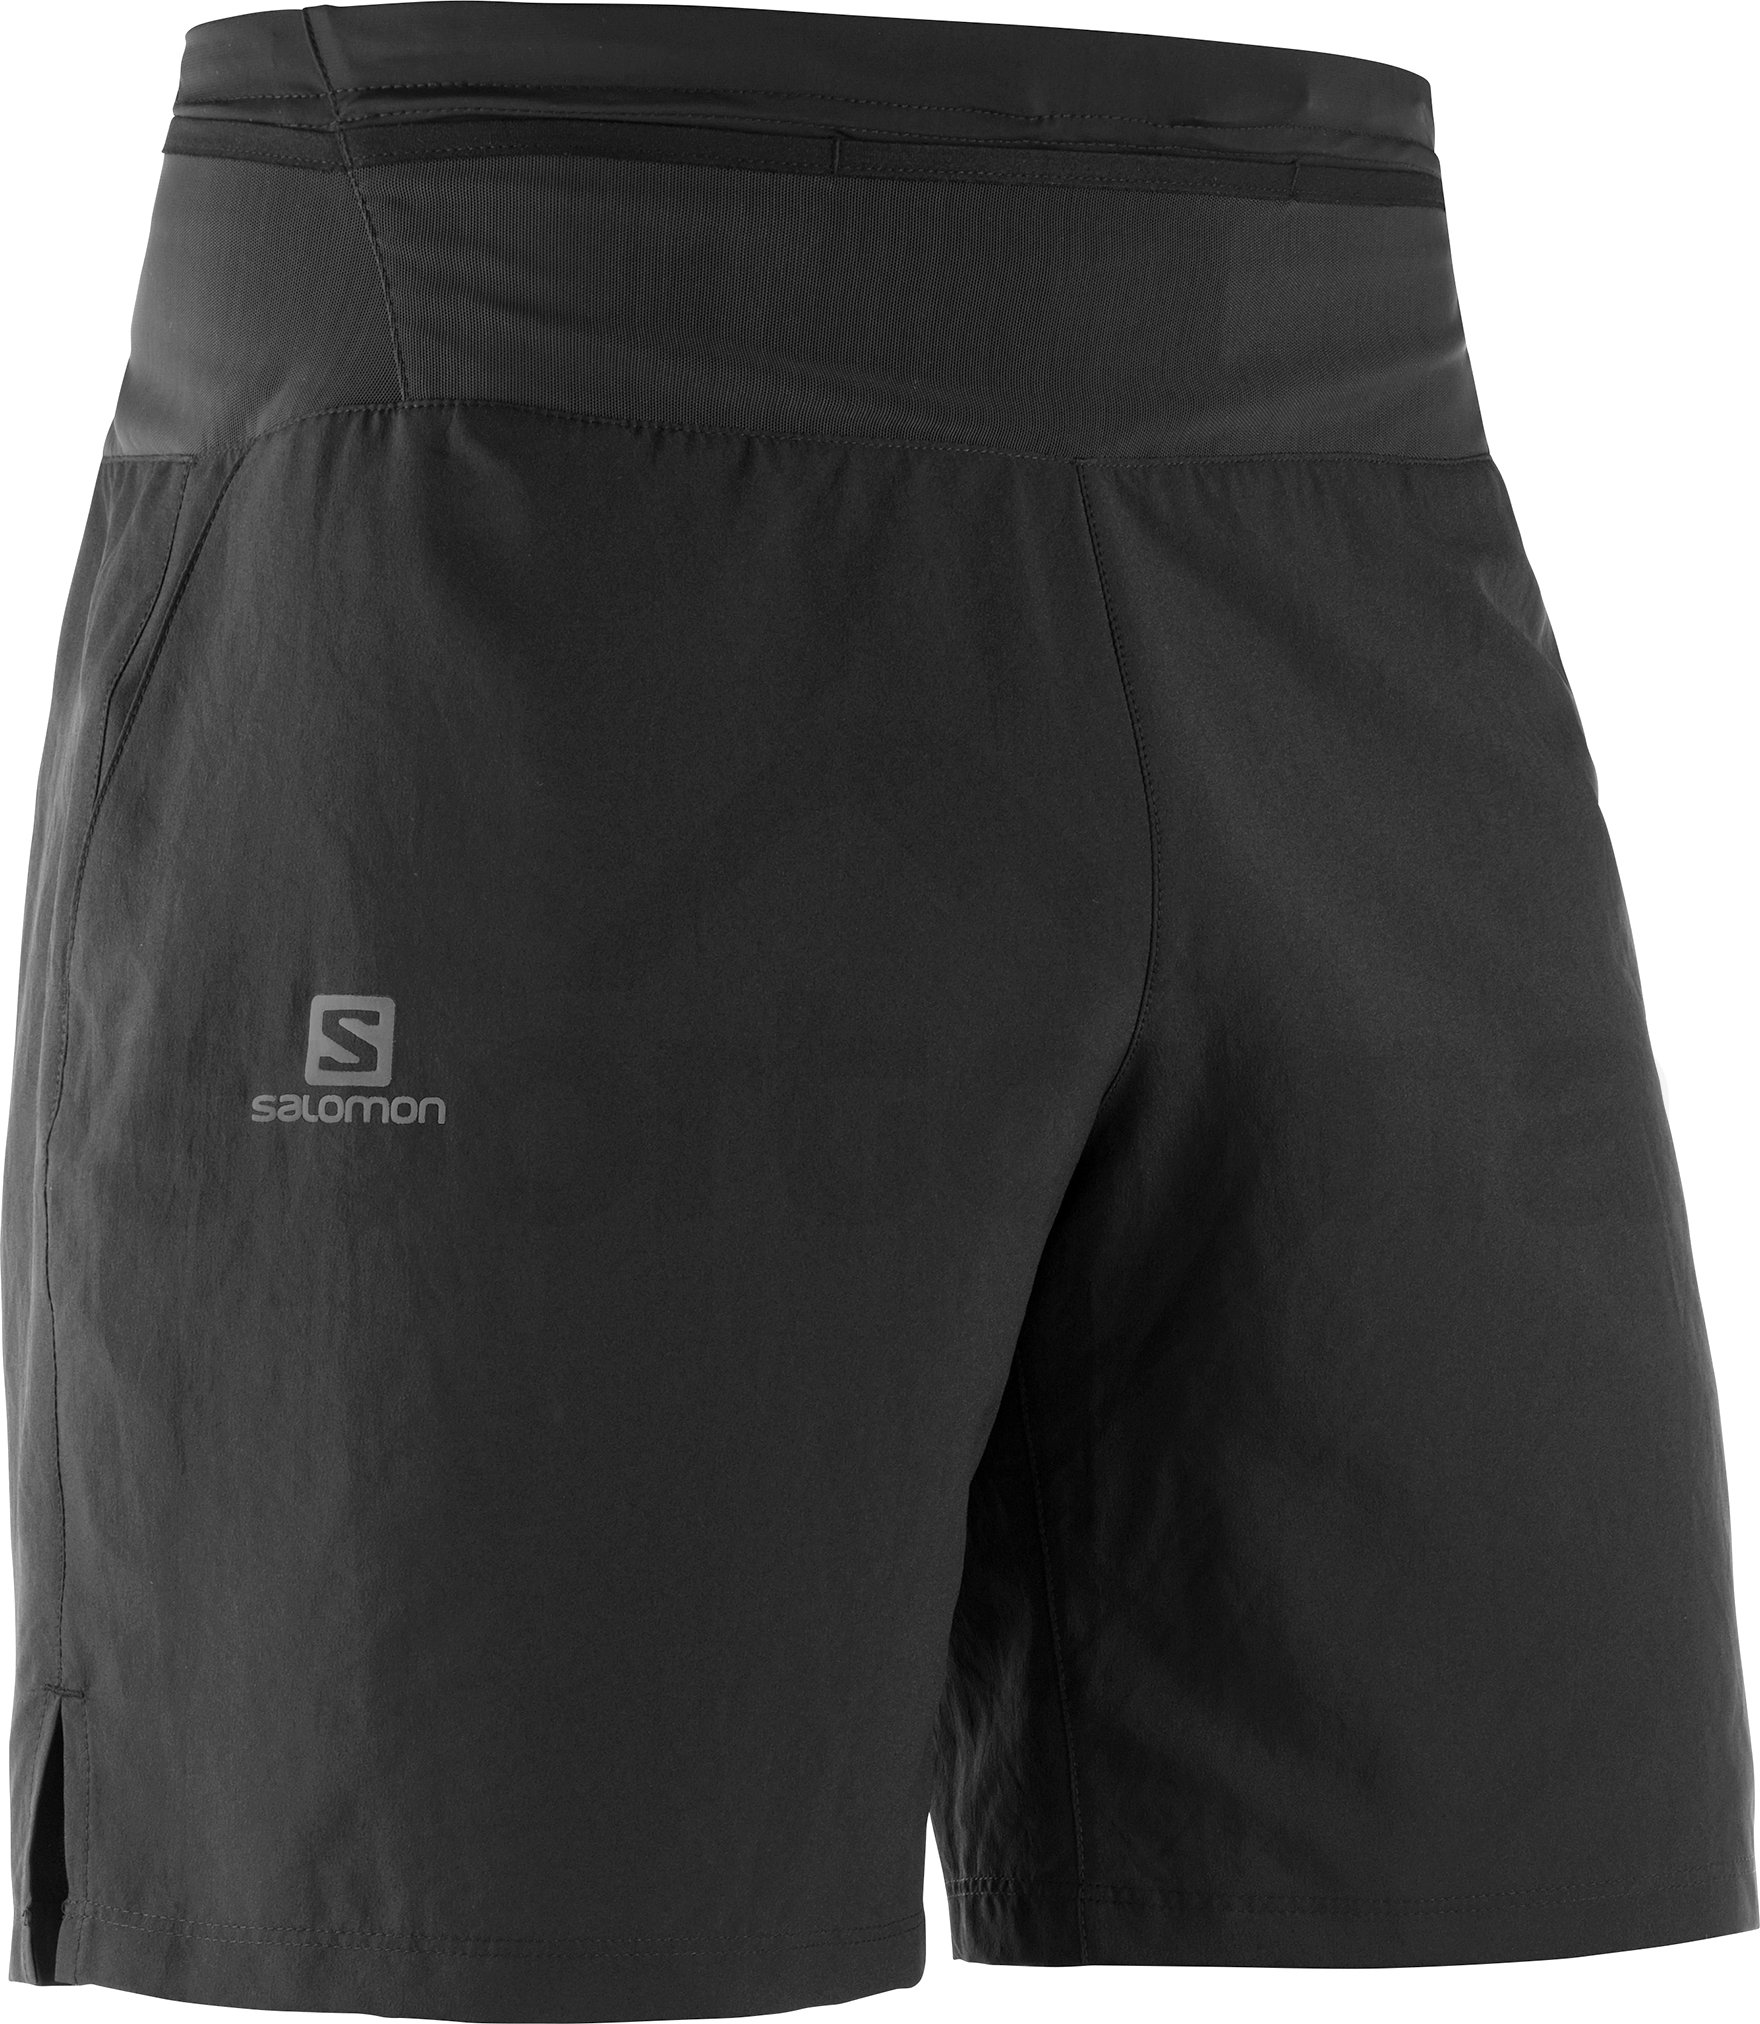 LC1035600_2_m_xatrainingshort_black_run.jpg.originaln